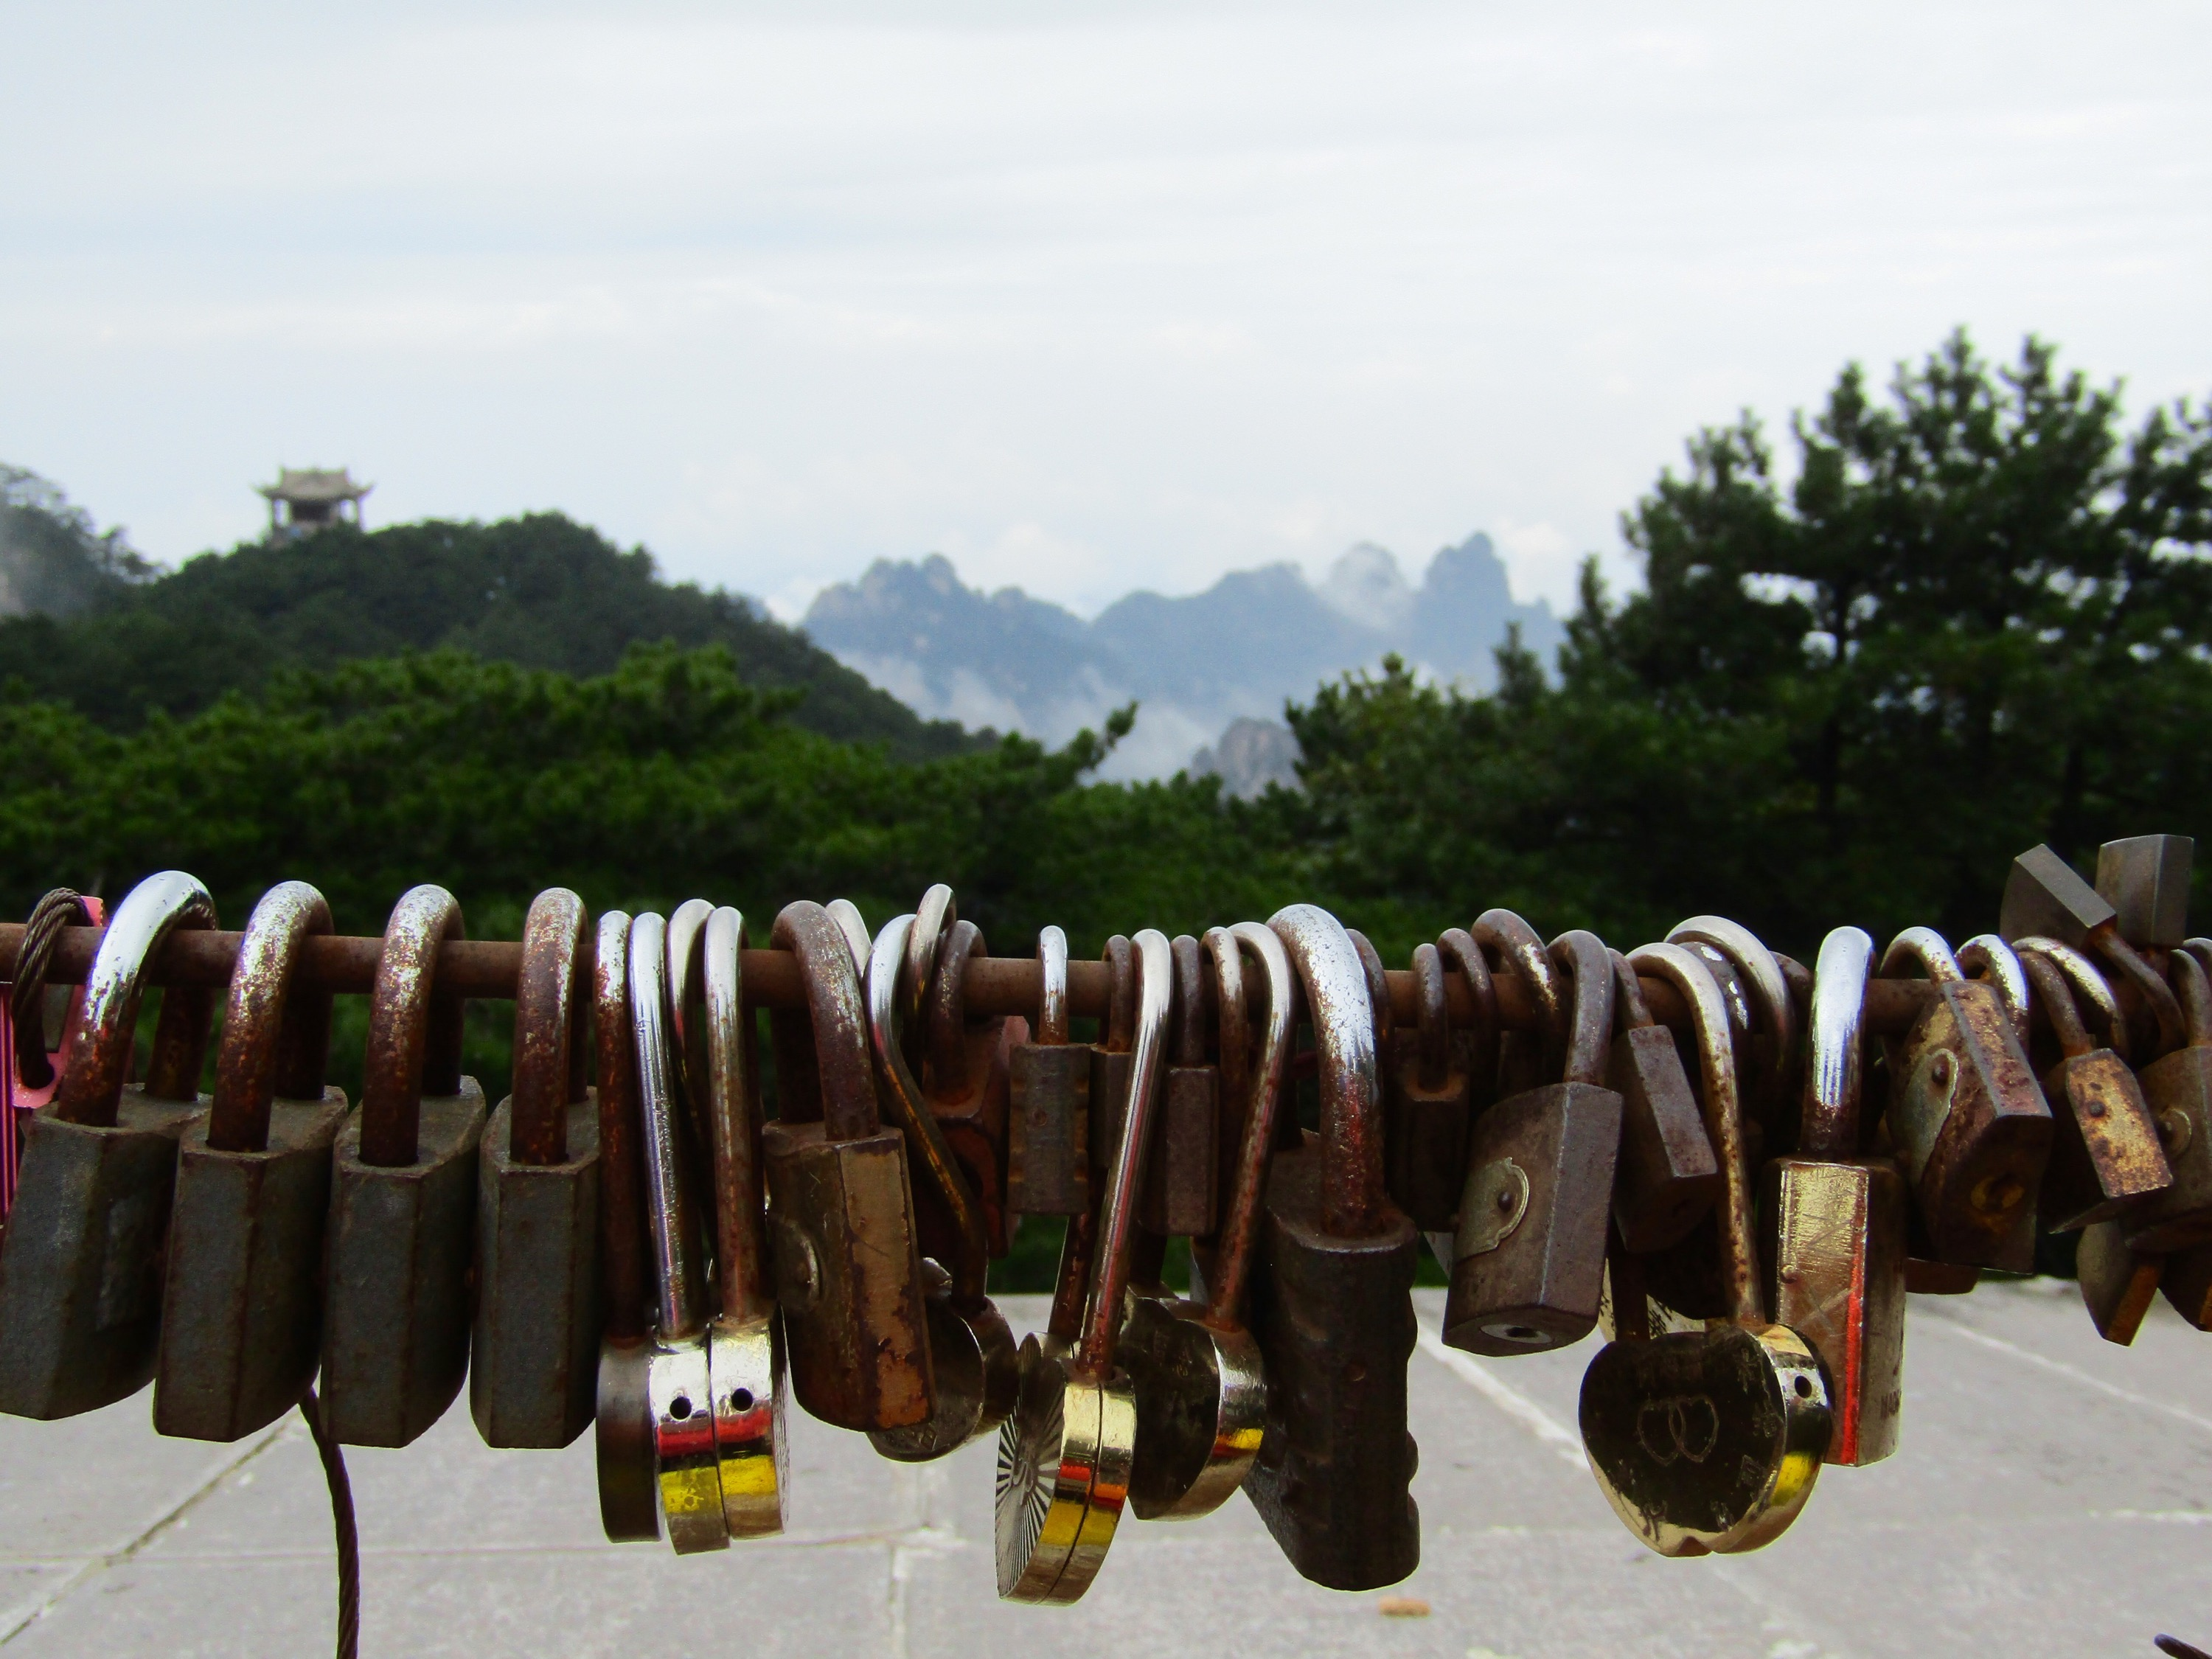 At Bright Summit Peak, lovers tie padlocks to the railing and toss the key into the valley below, ensuring an eternal bond.